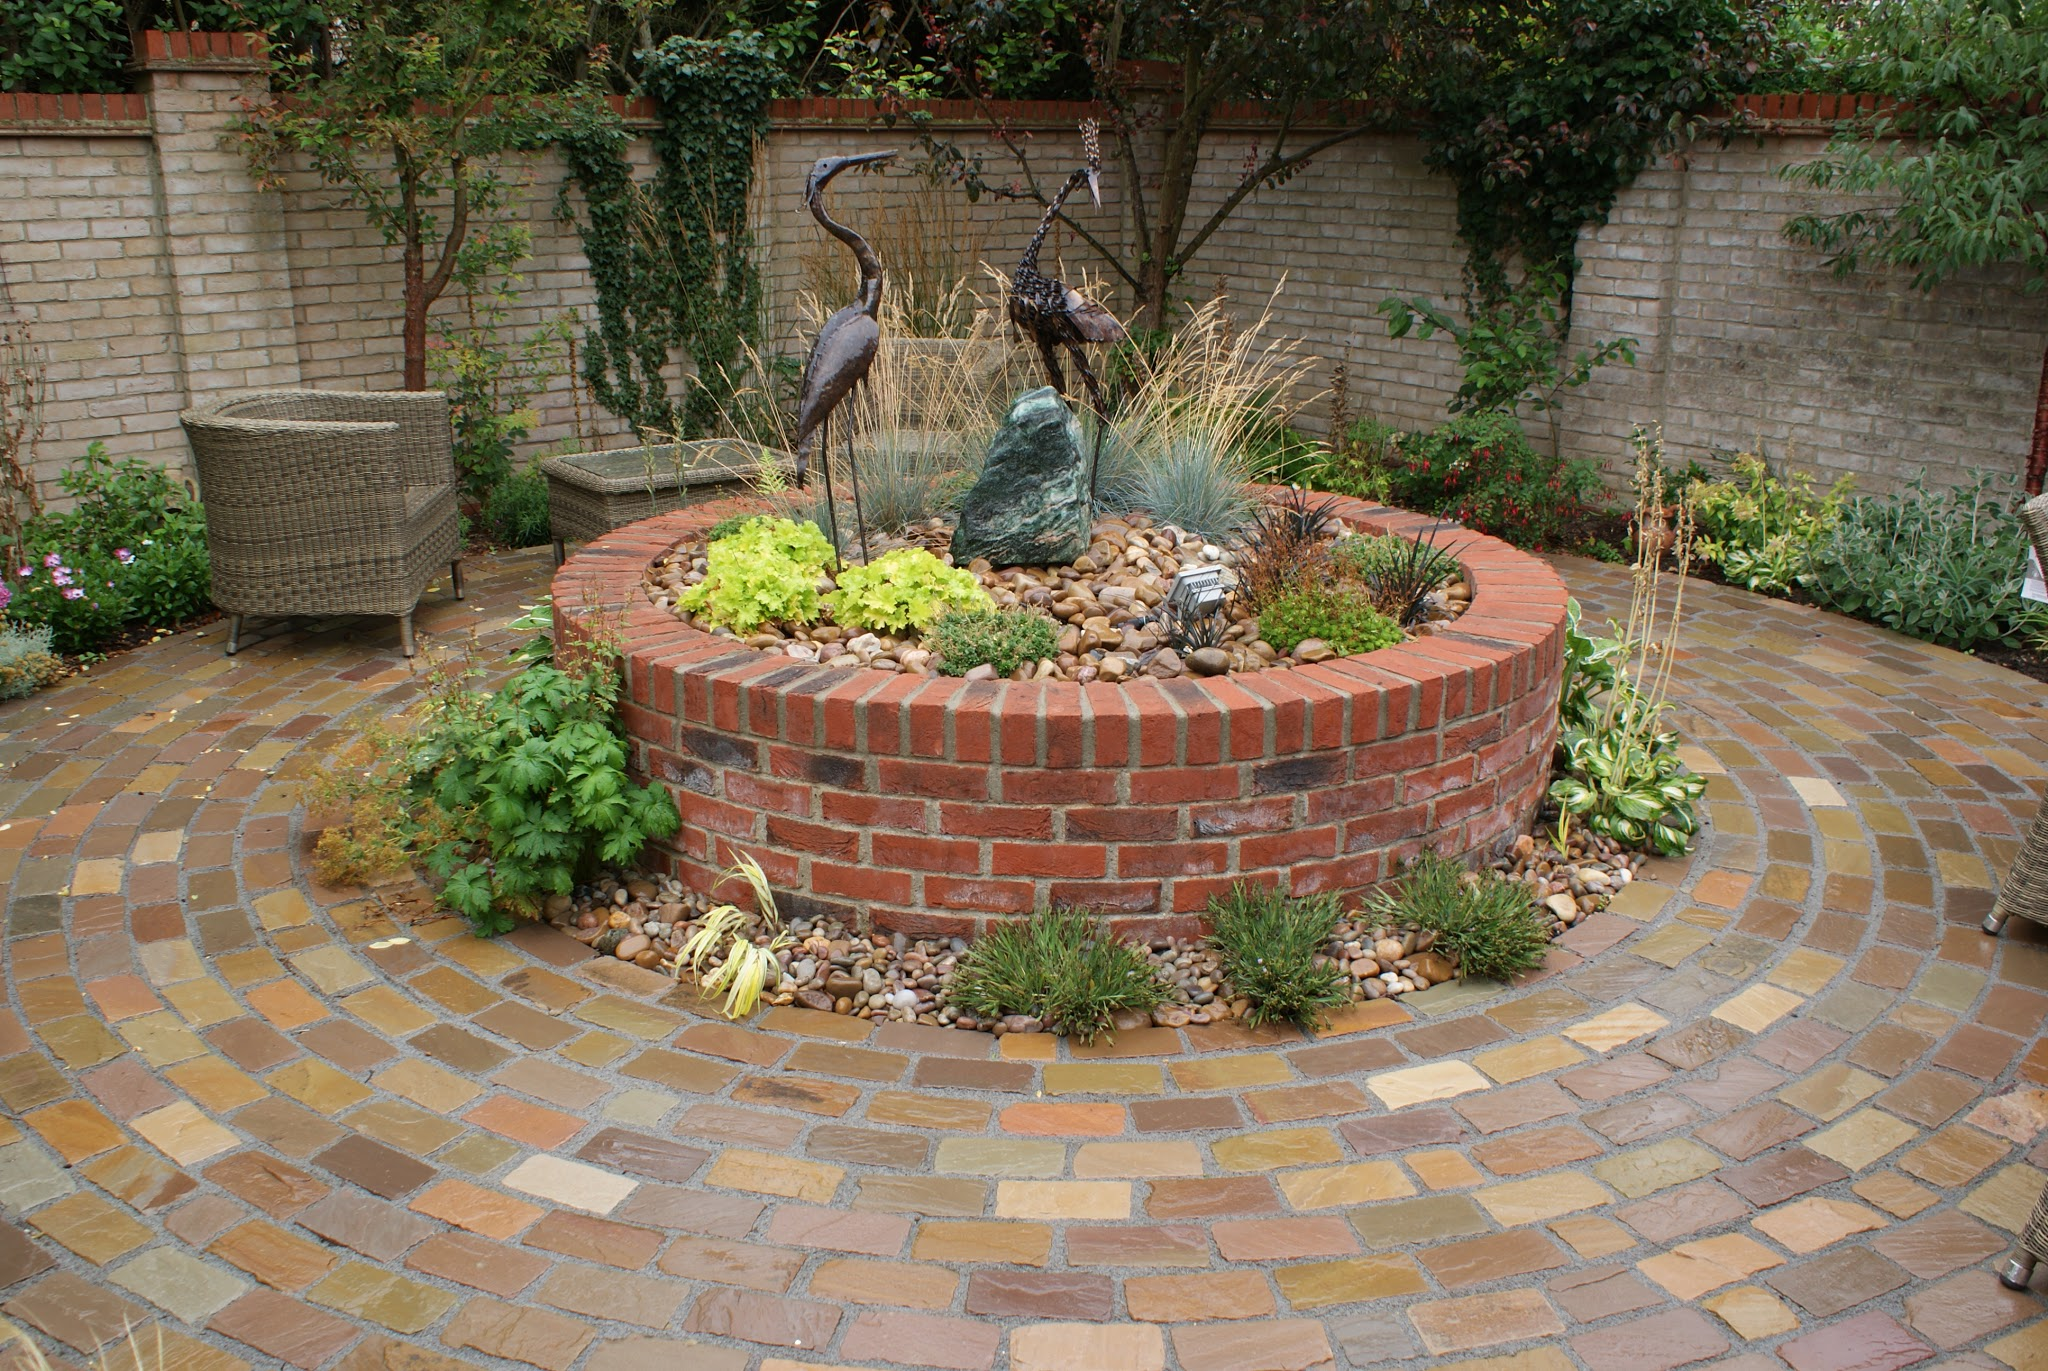 Courtyard garden design with water feature